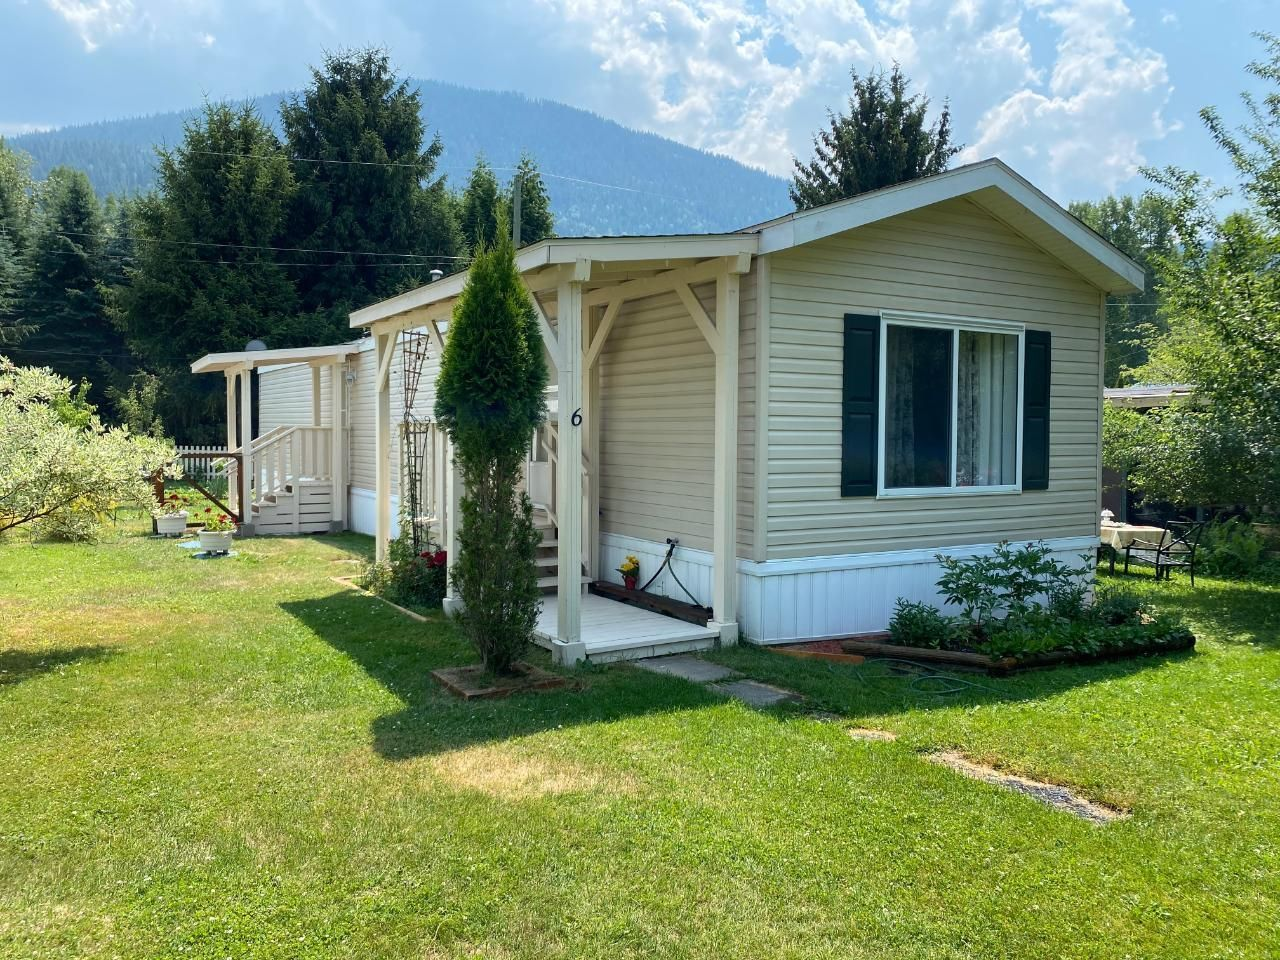 Main Photo: 6 - 2916 GEORAMA RD in Nelson: House for sale : MLS®# 2459690